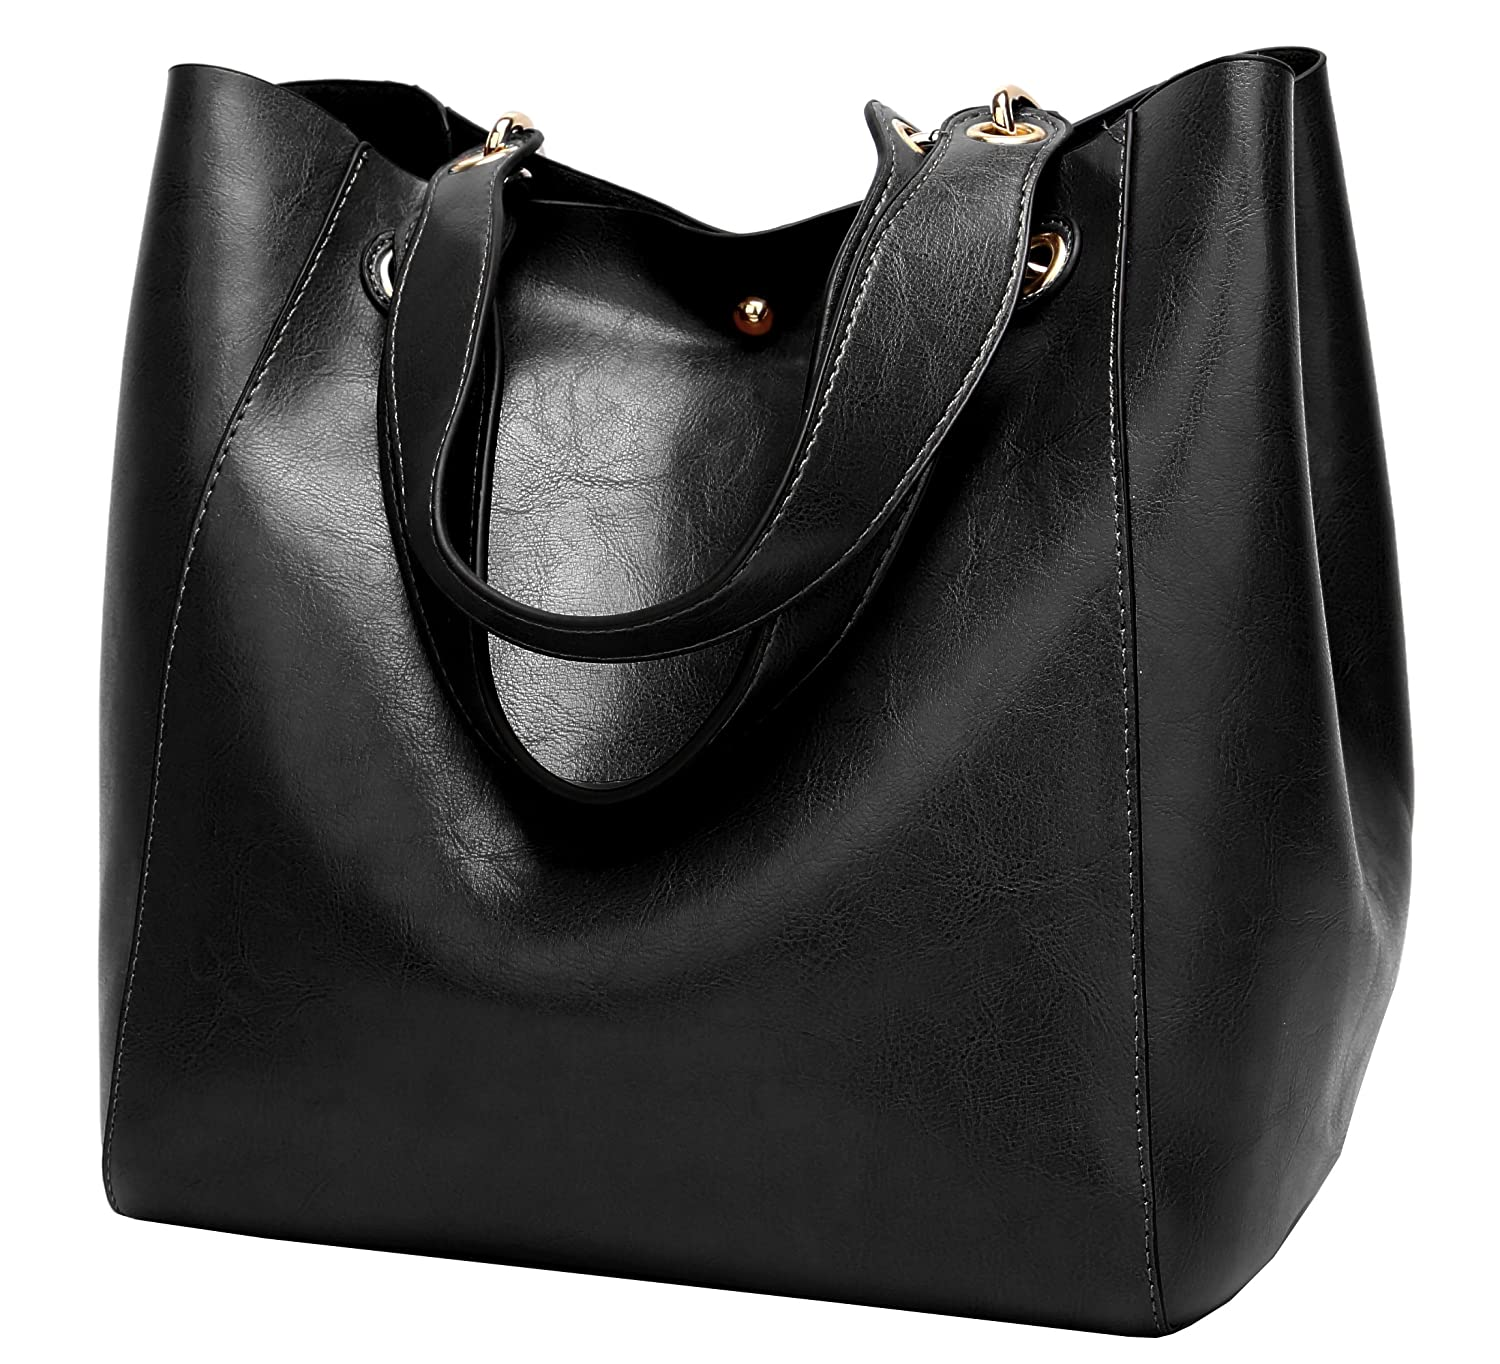 f19175078ce Molodo Womens Satchel Hobo Top Handle Tote Leather Handbag Designer  Shoulder Purse Bucket Crossbody Bag